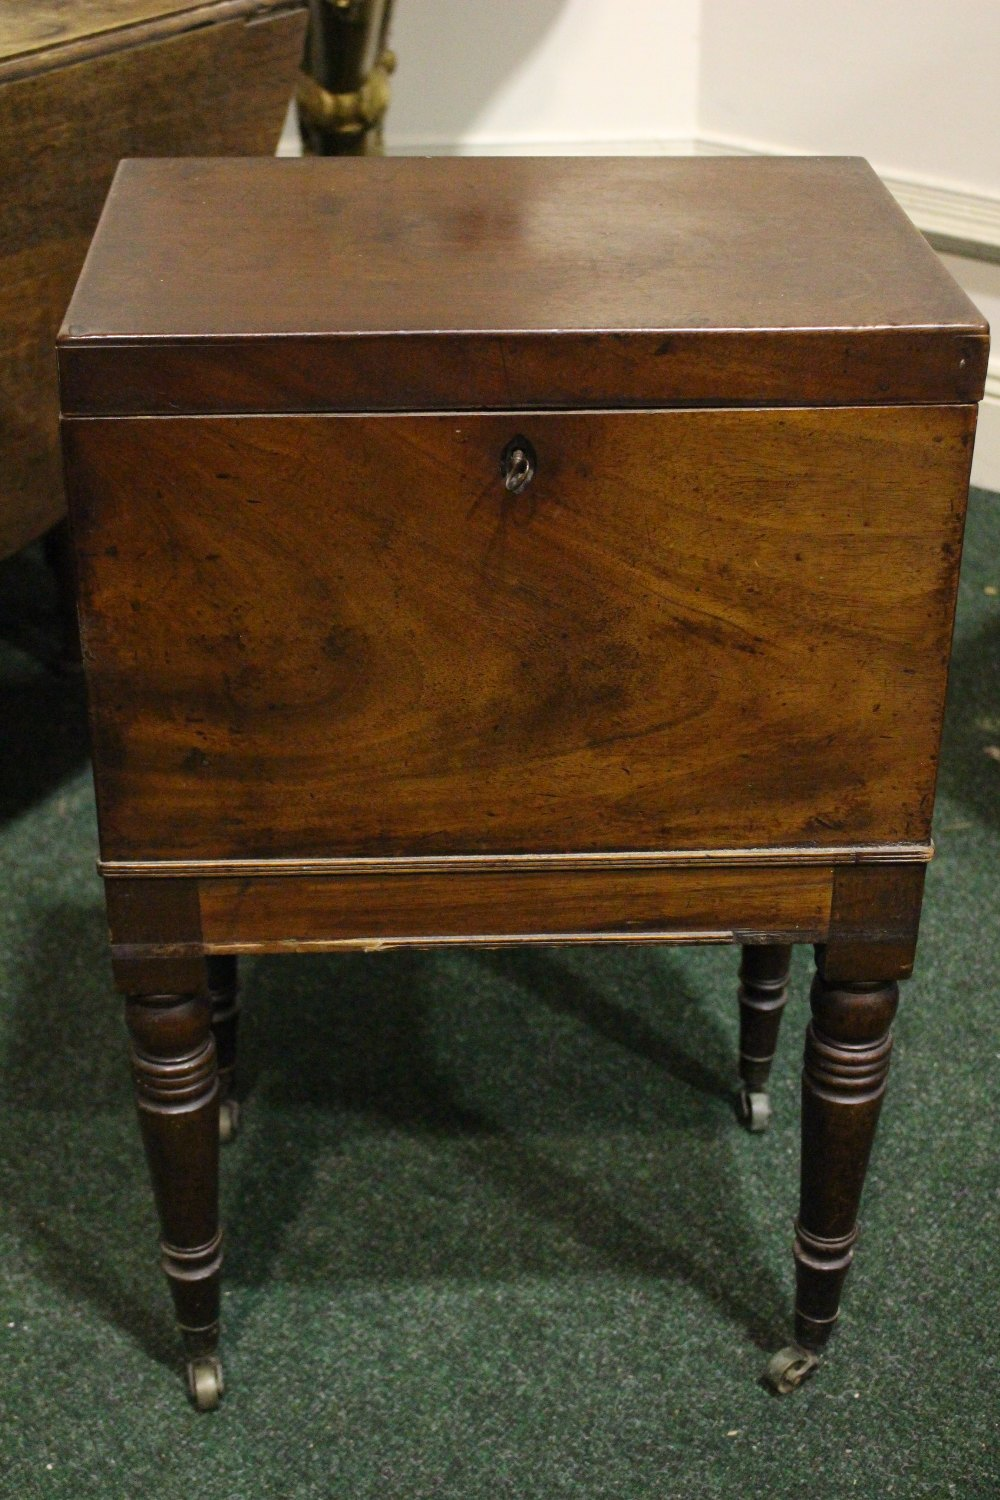 A VERY GOOD CELLARET / CADDY STAND, with hinged top, compartmented interior, with a pierced lift out